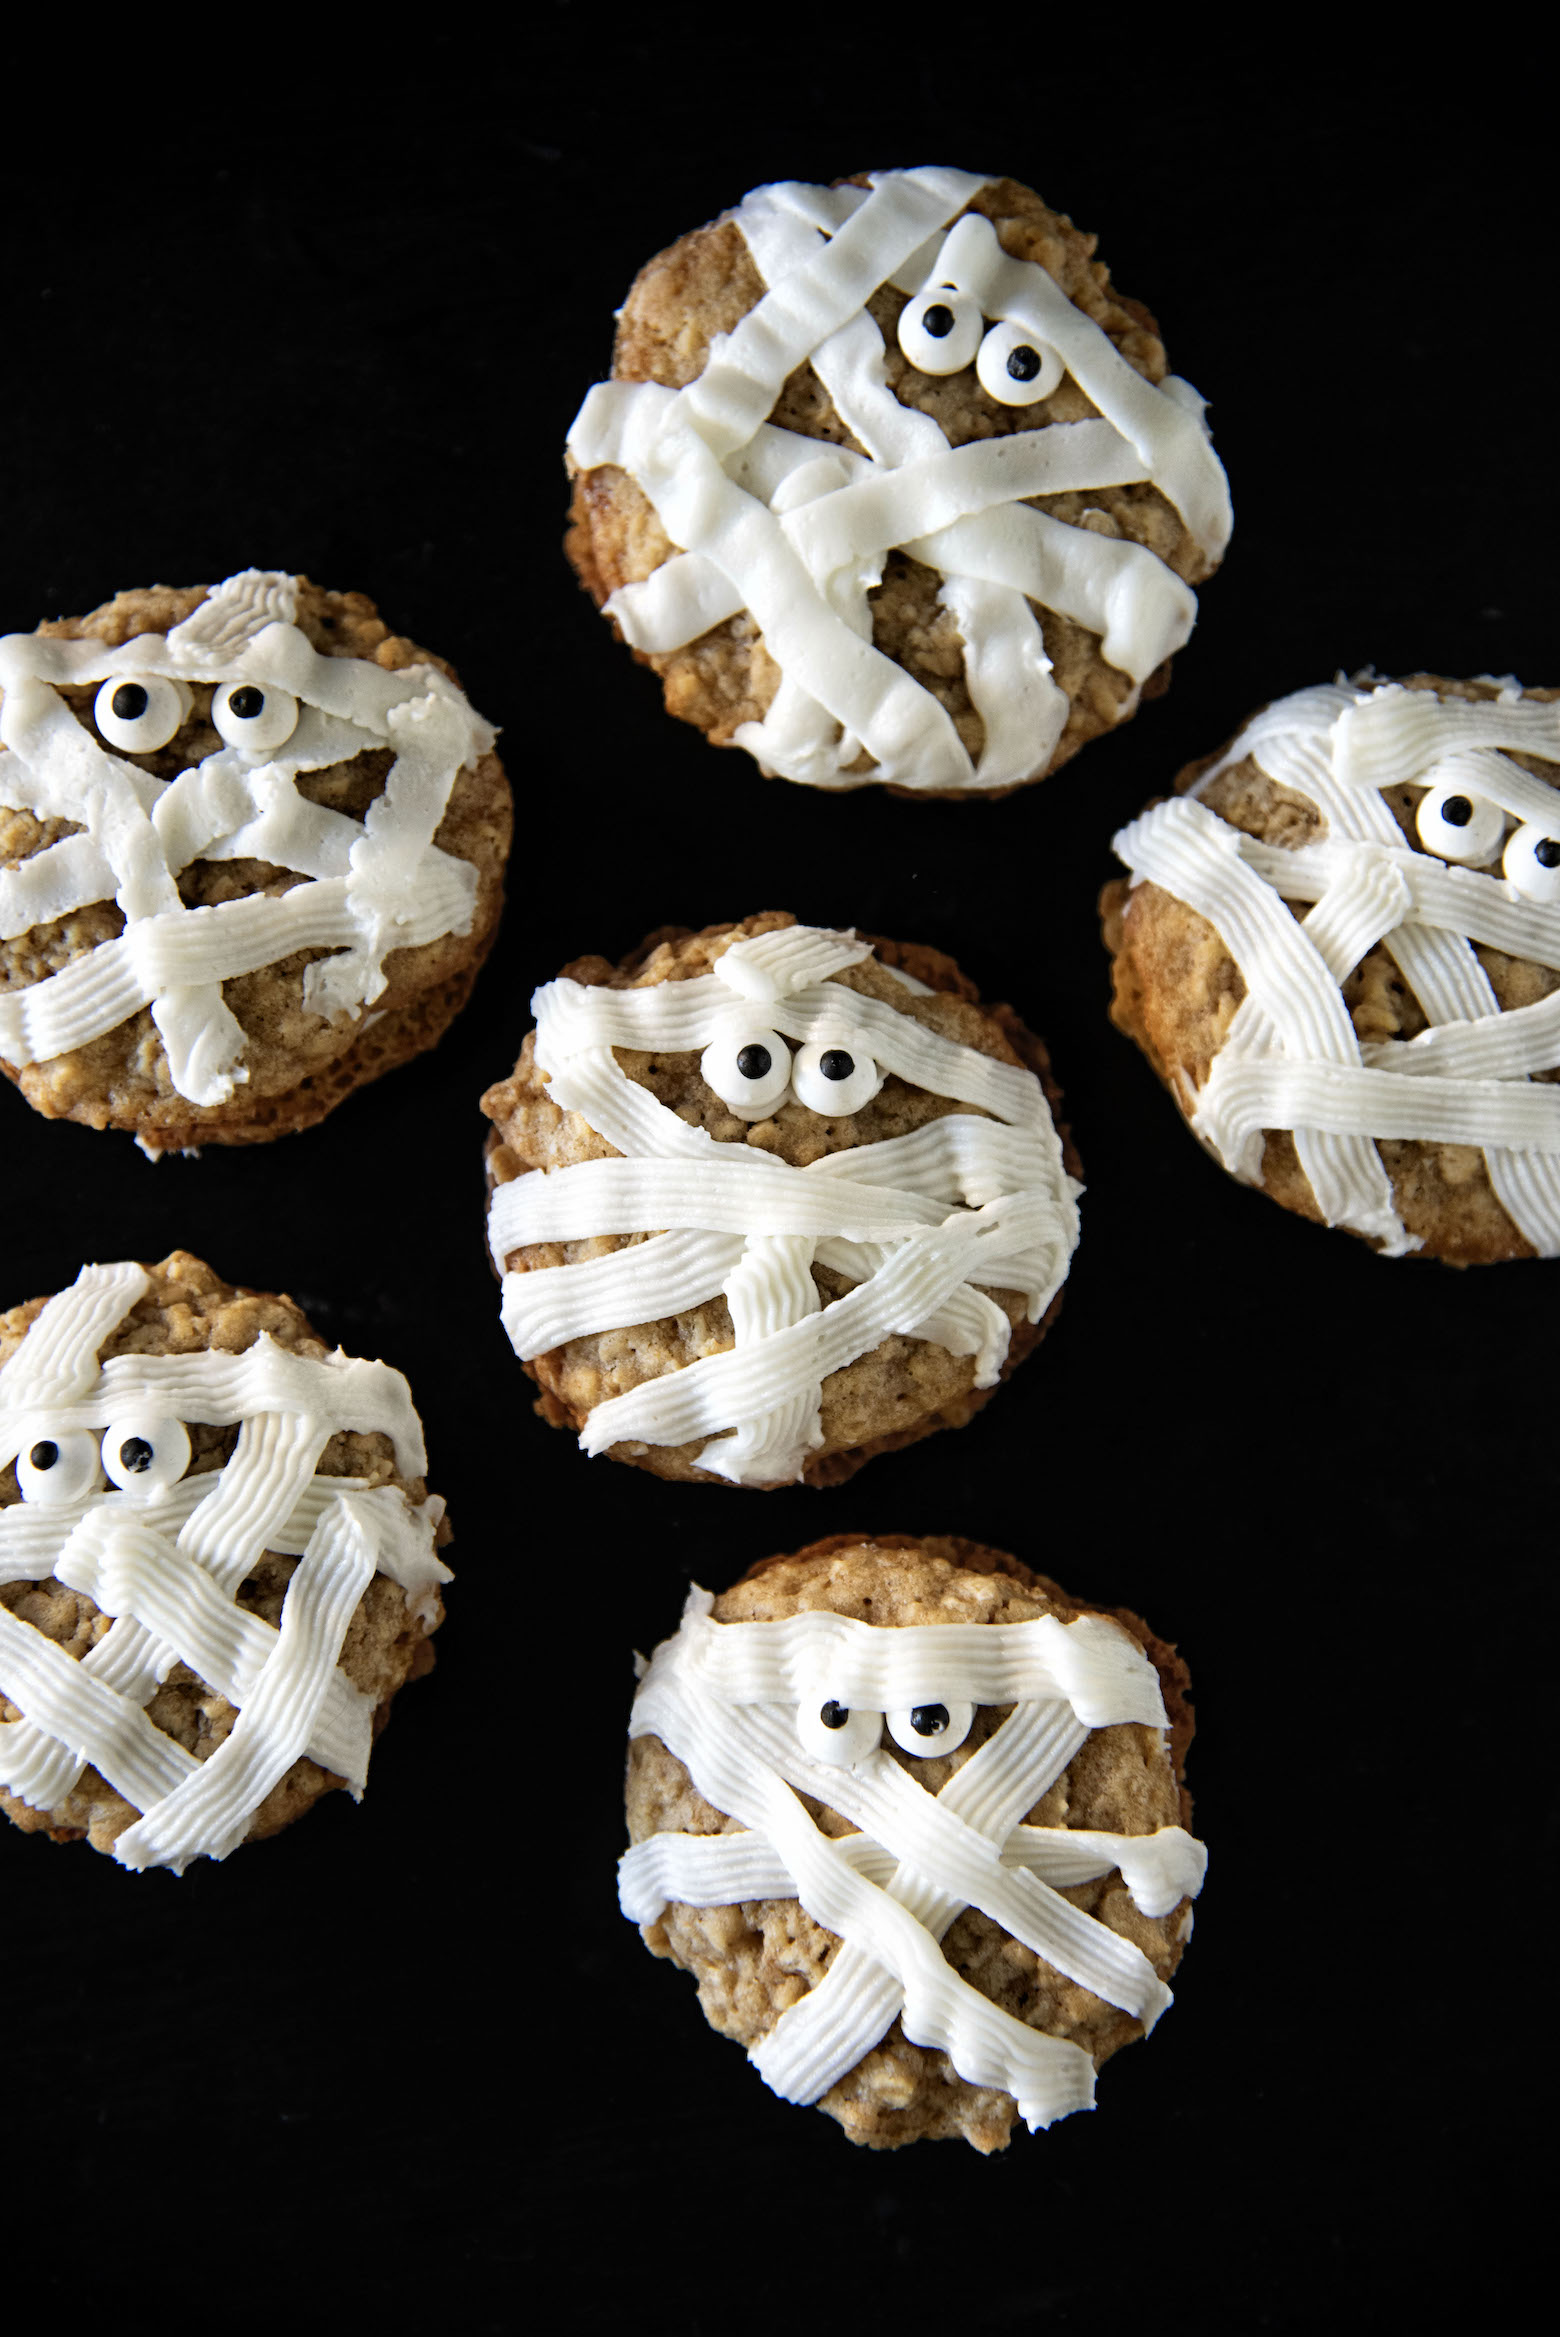 Maple Mummy Oatmeal Cookie Cream Pies